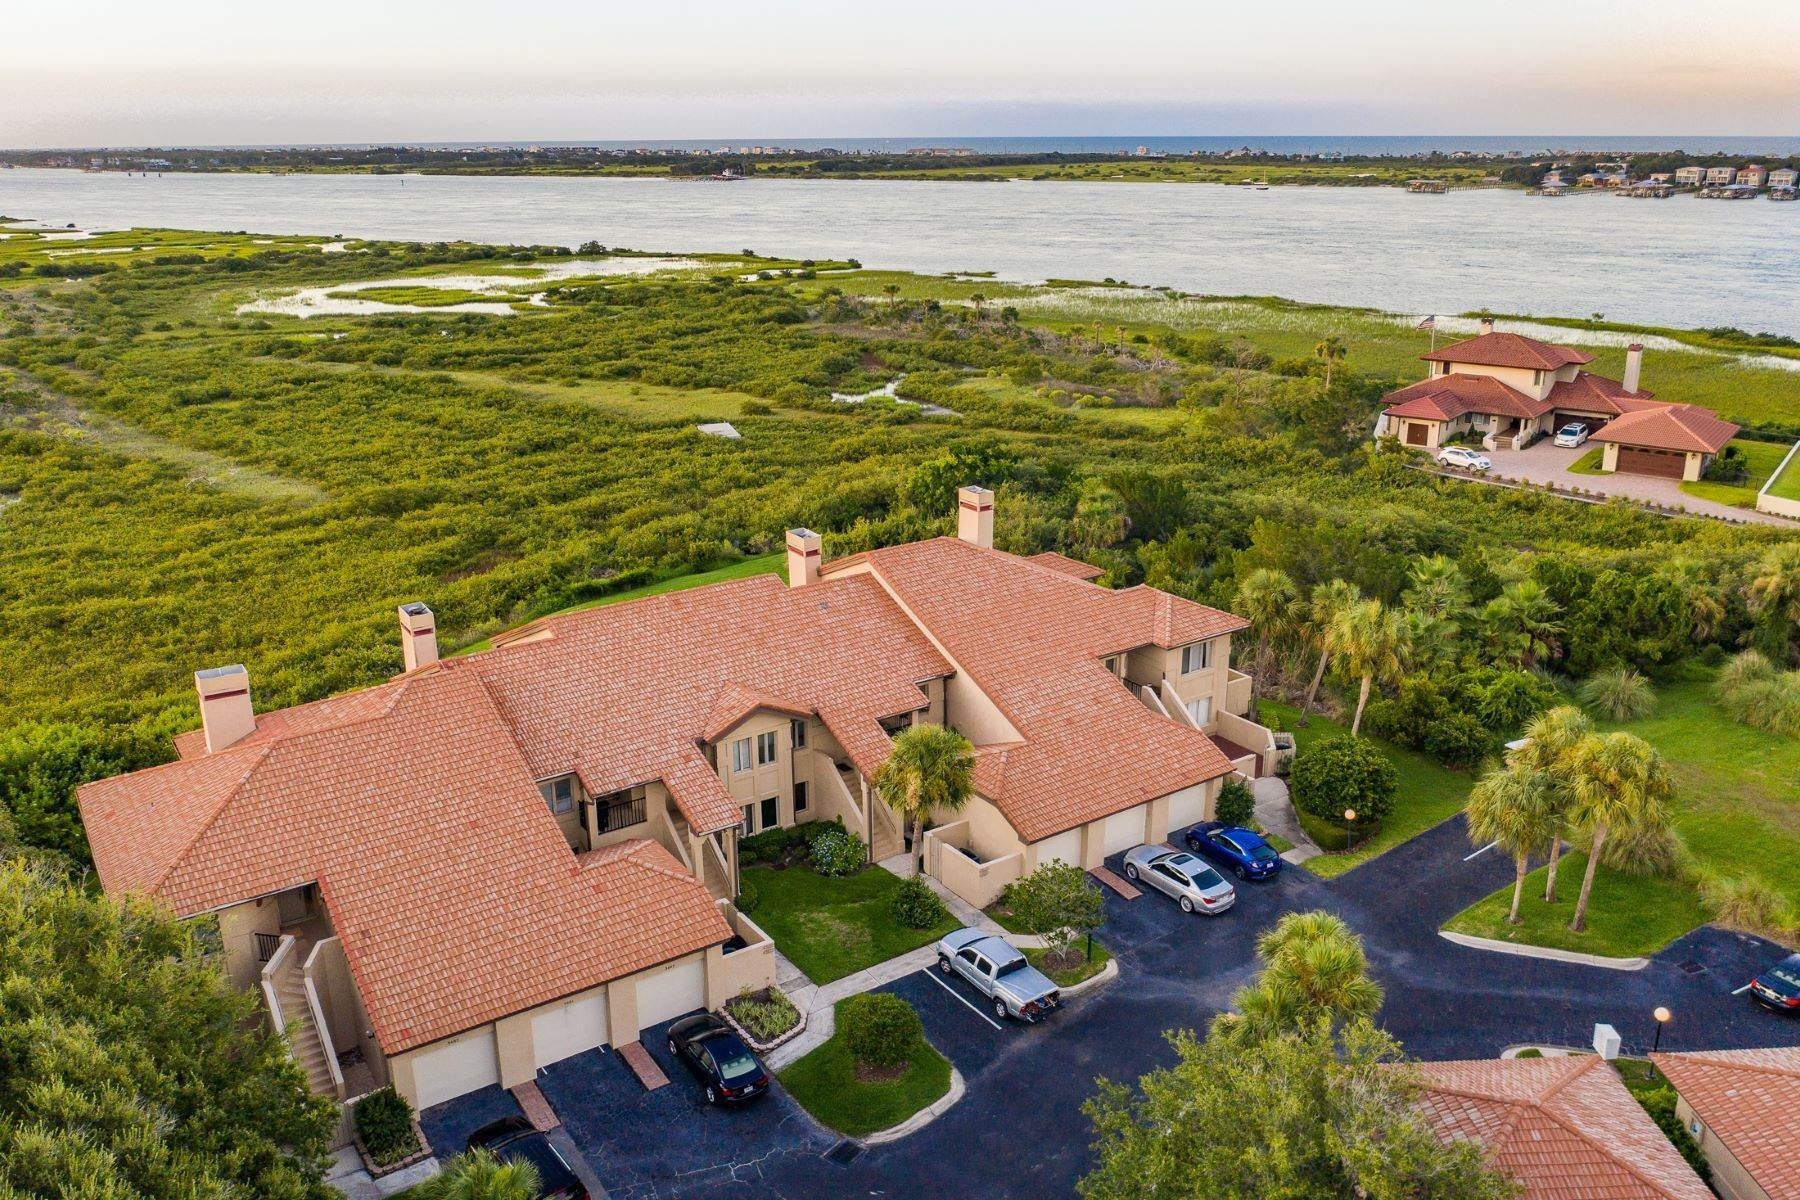 Condominiums for Sale at 3607 Harbor Drive, St. Augustine, FL 32084 3607 Harbor Drive St. Augustine, Florida 32084 United States